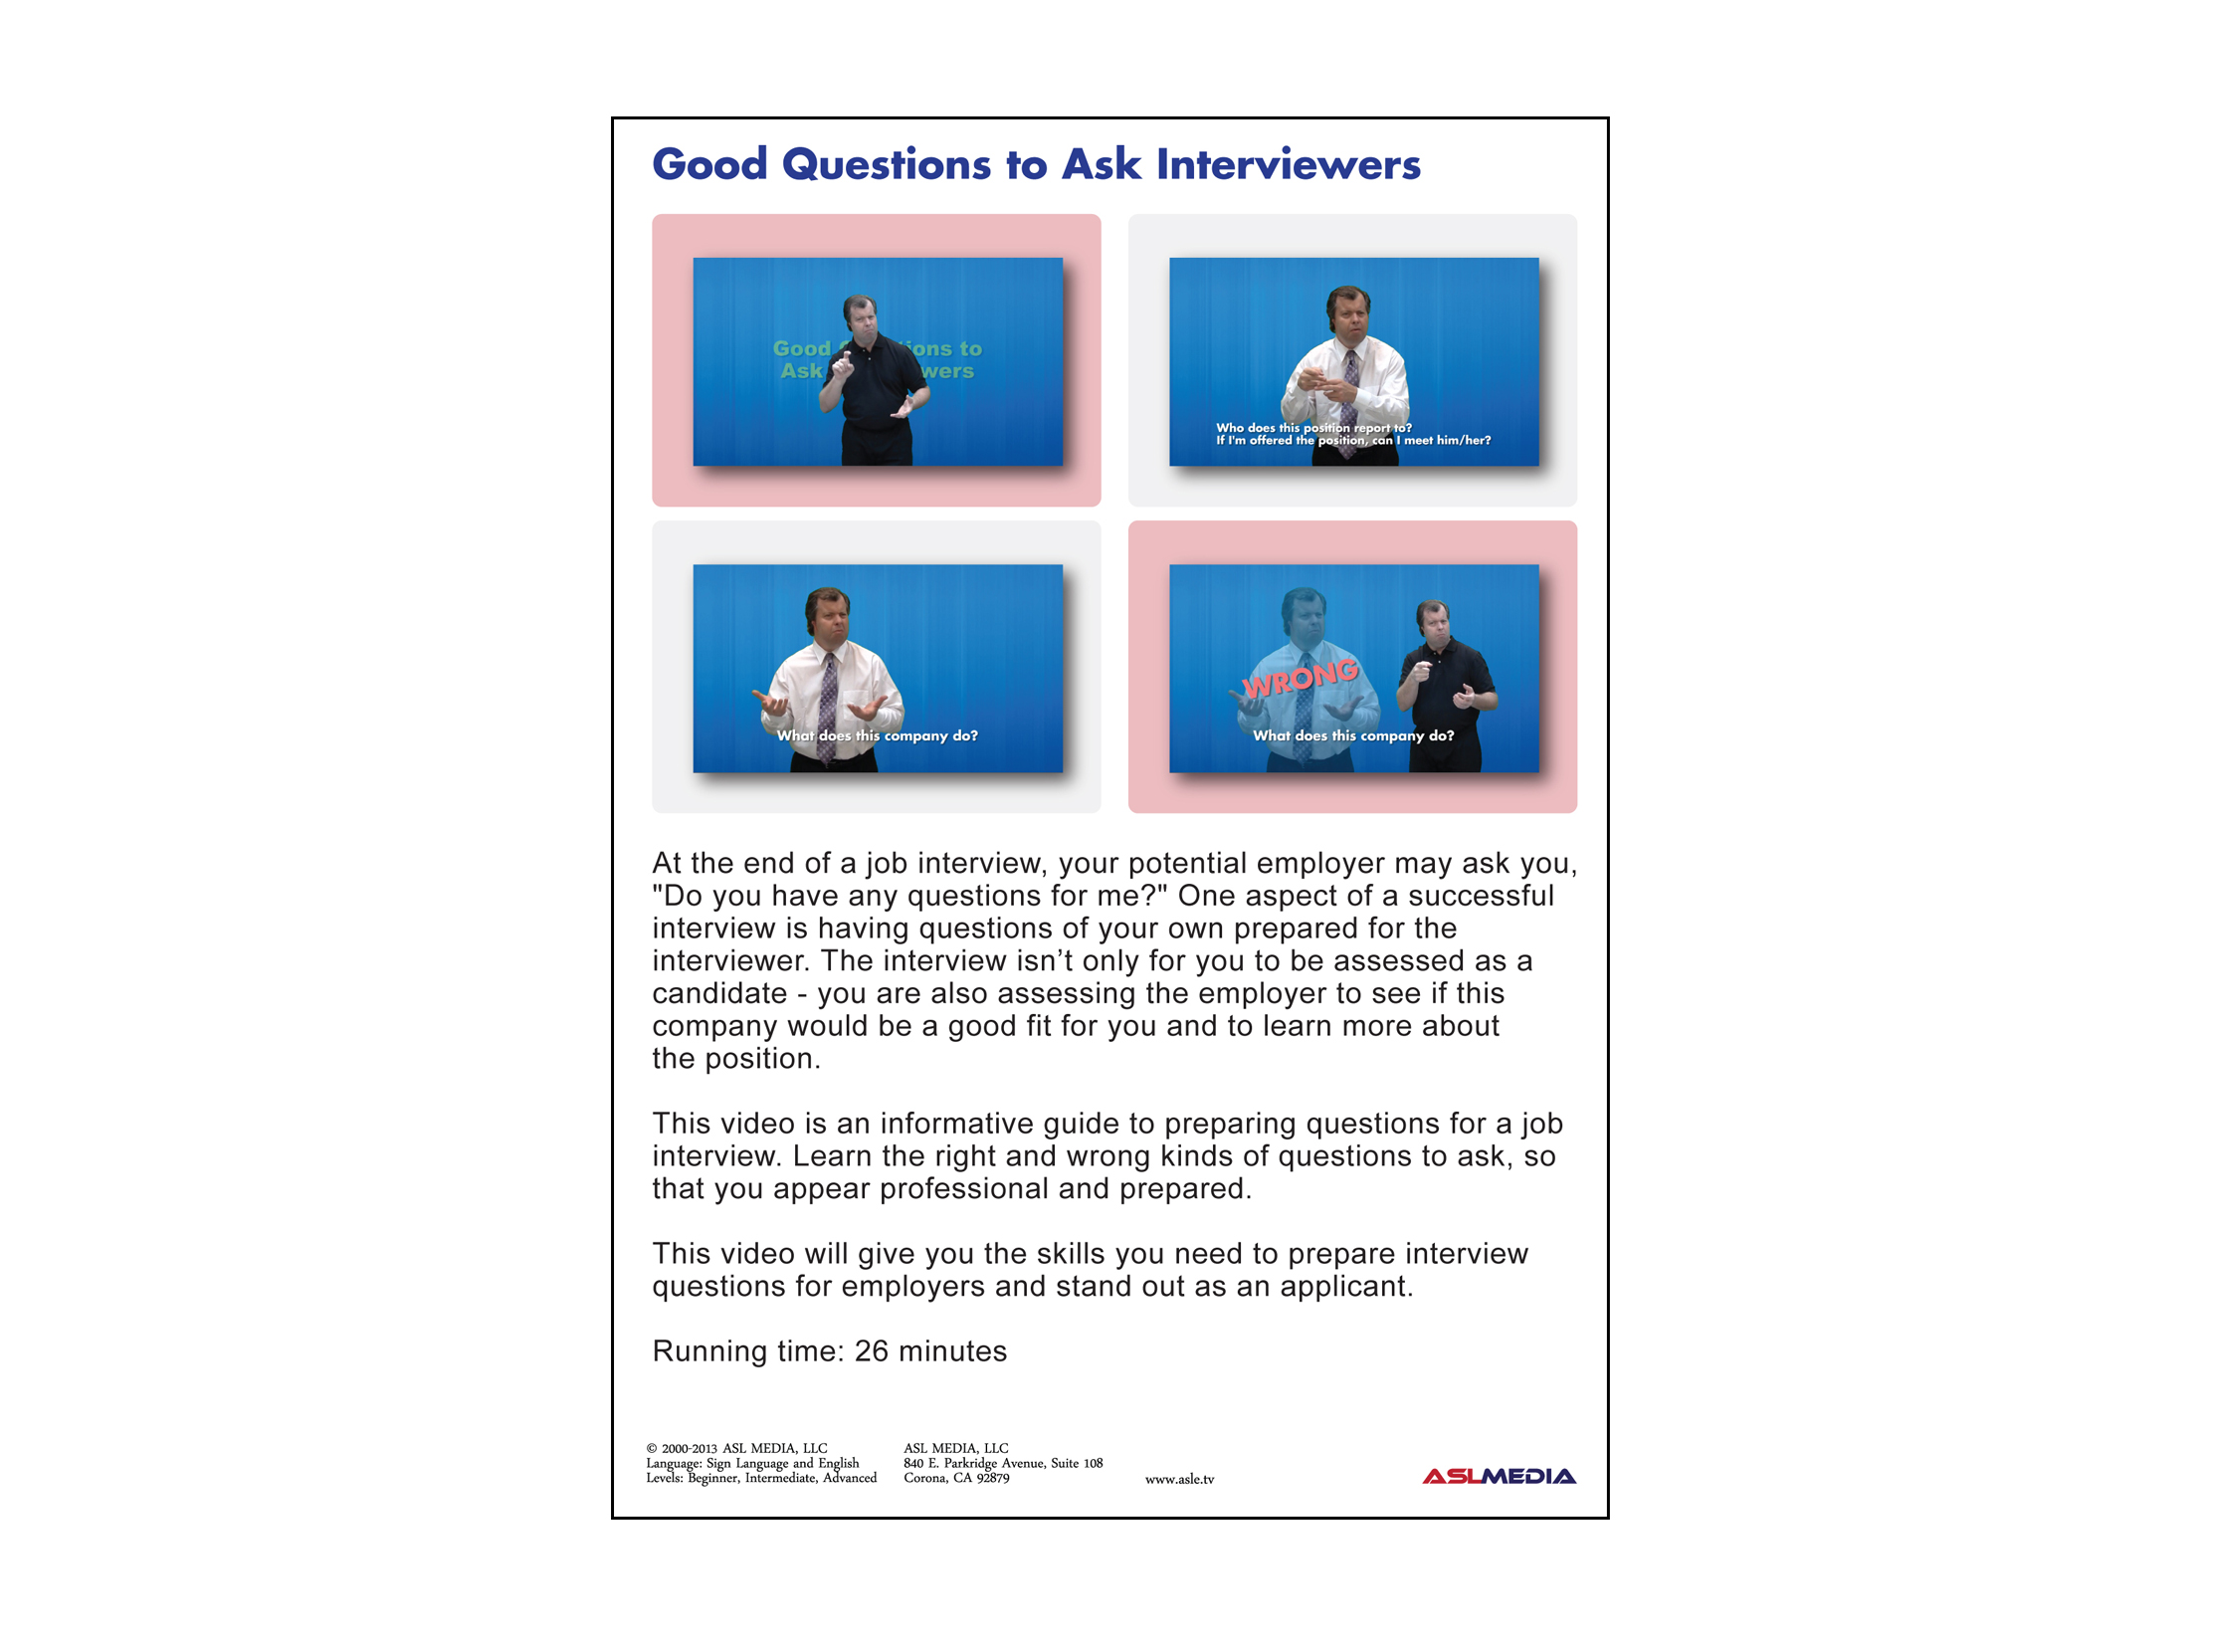 Job Success Good Questions to Ask Interviewers - DVD (First Version